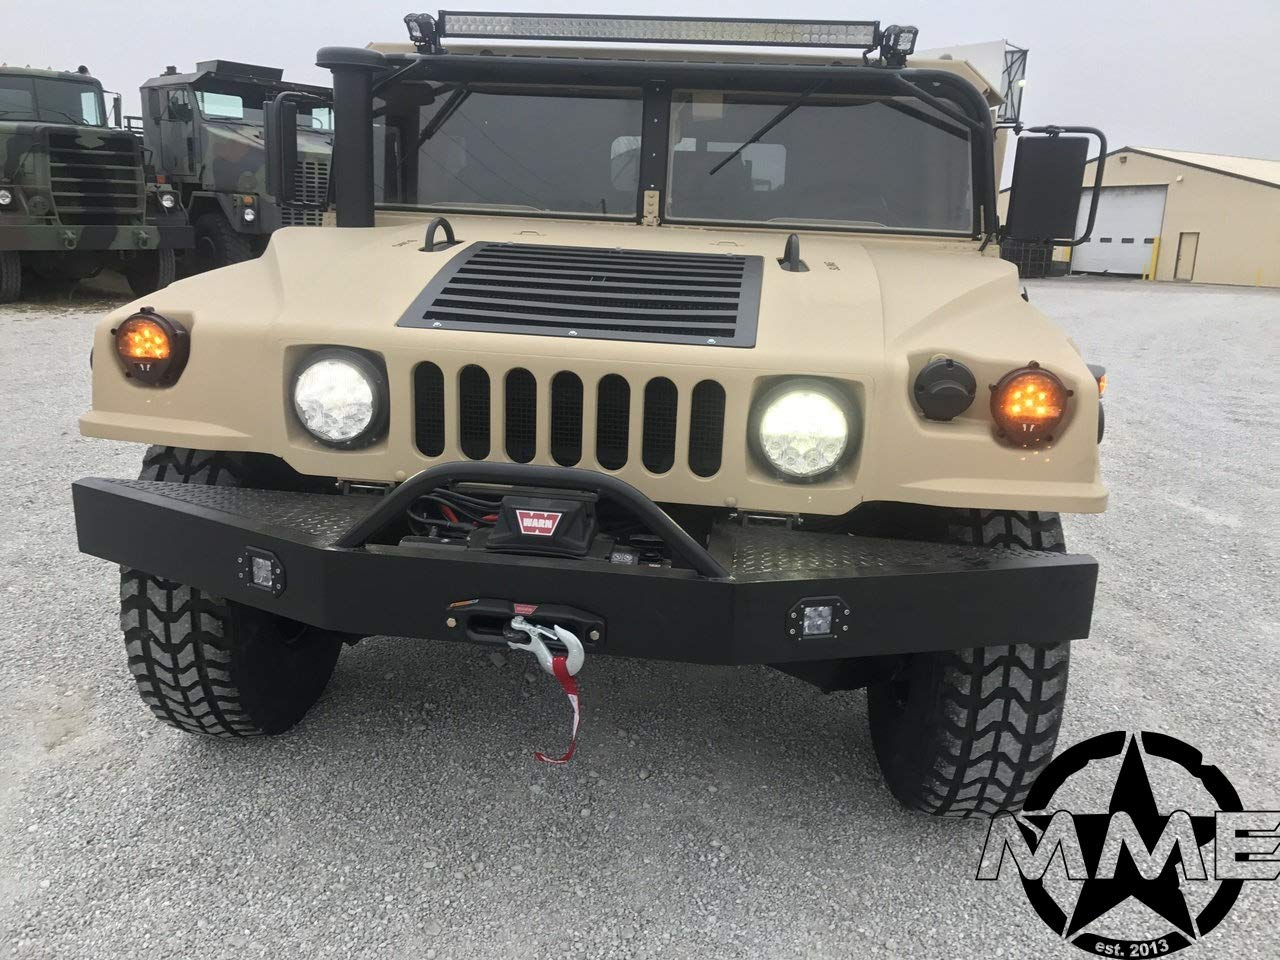 MILITARY HUMVEE HMMWV M11111111 M11111111A1111 FRONT WINCH BUMPER H1111 HUMMER | military h1 hummer